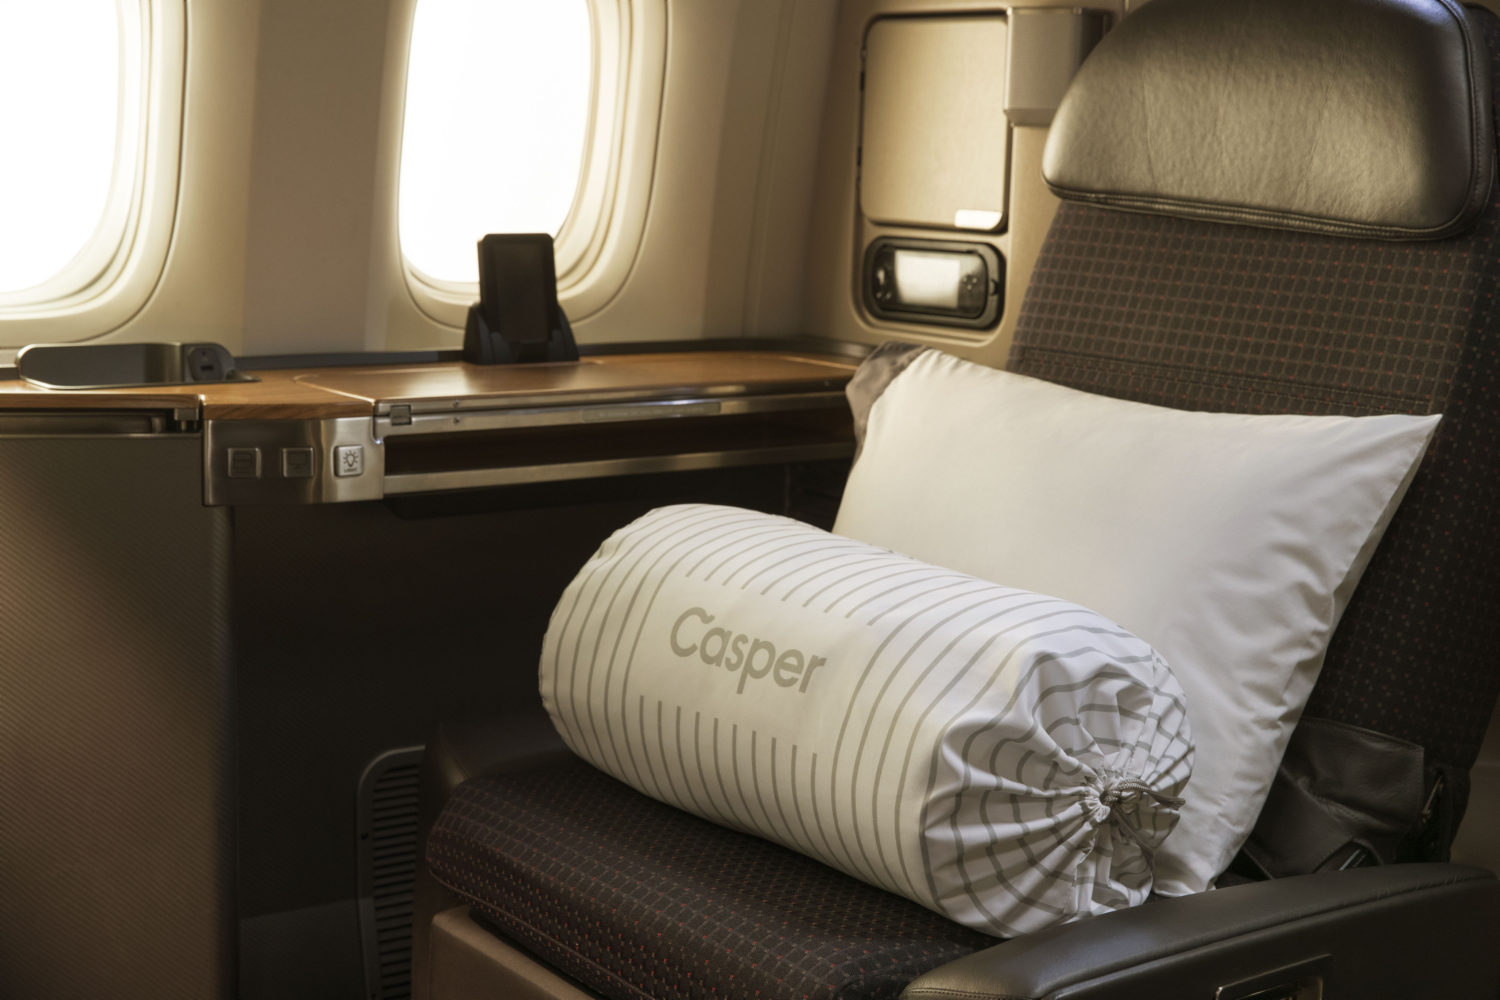 Casper Teams Up with American Airlines for Better In-Flight Sleep